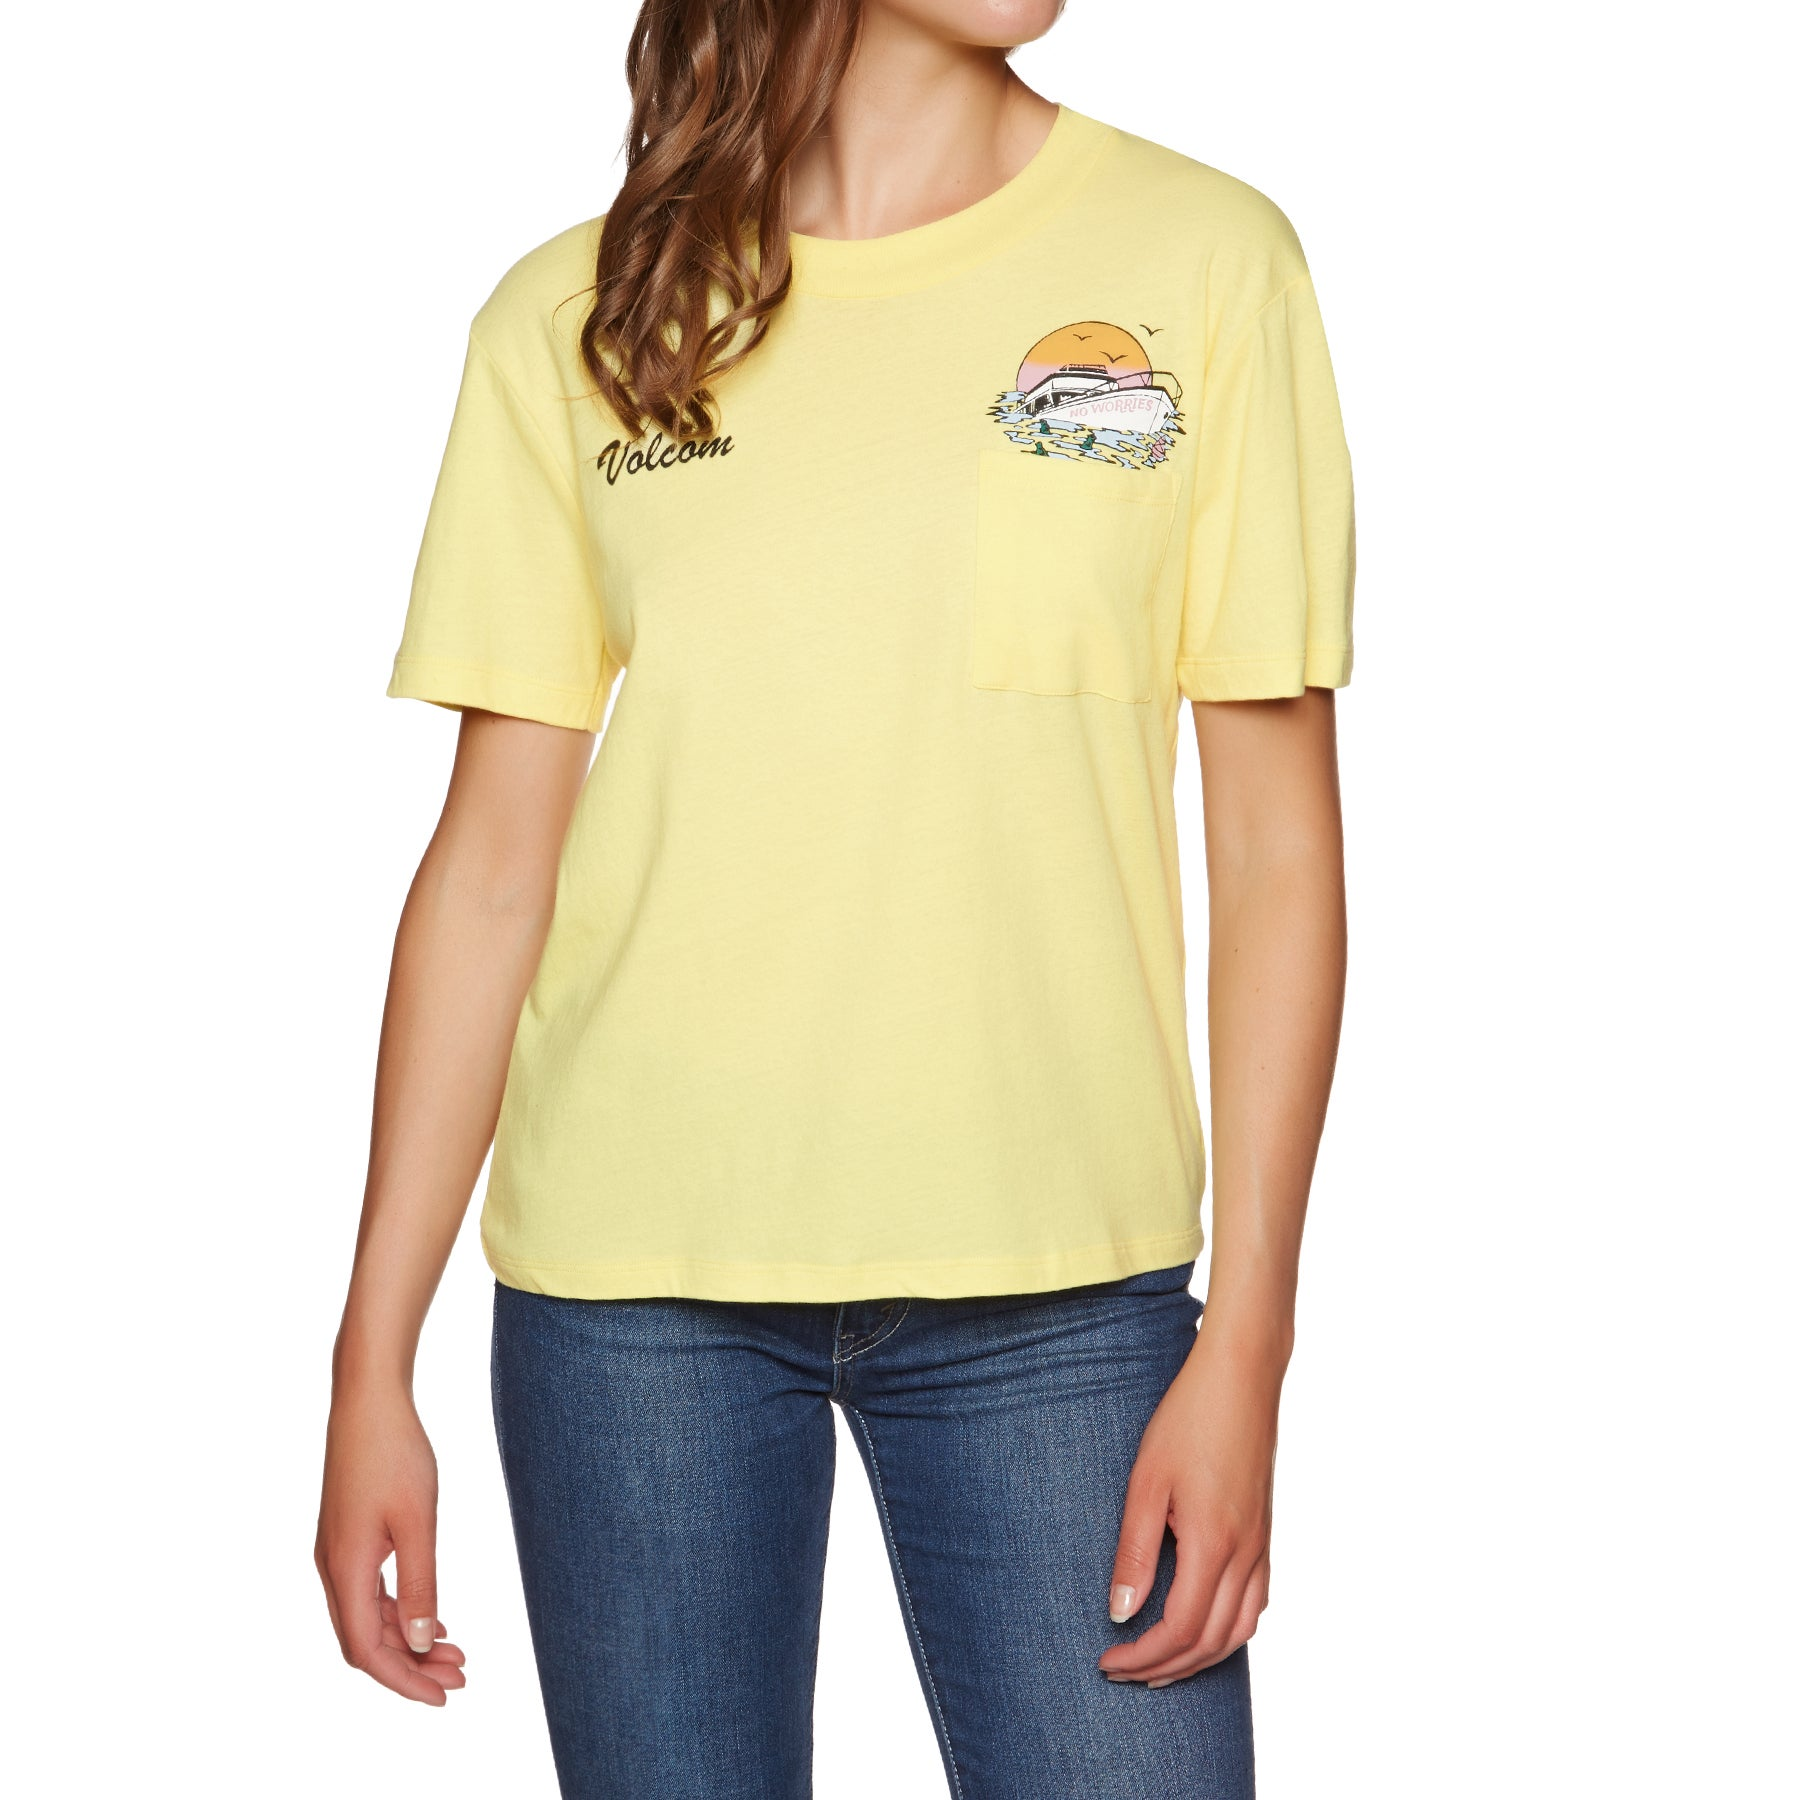 Volcom Pocket Dial Ladies Short Sleeve T-Shirt